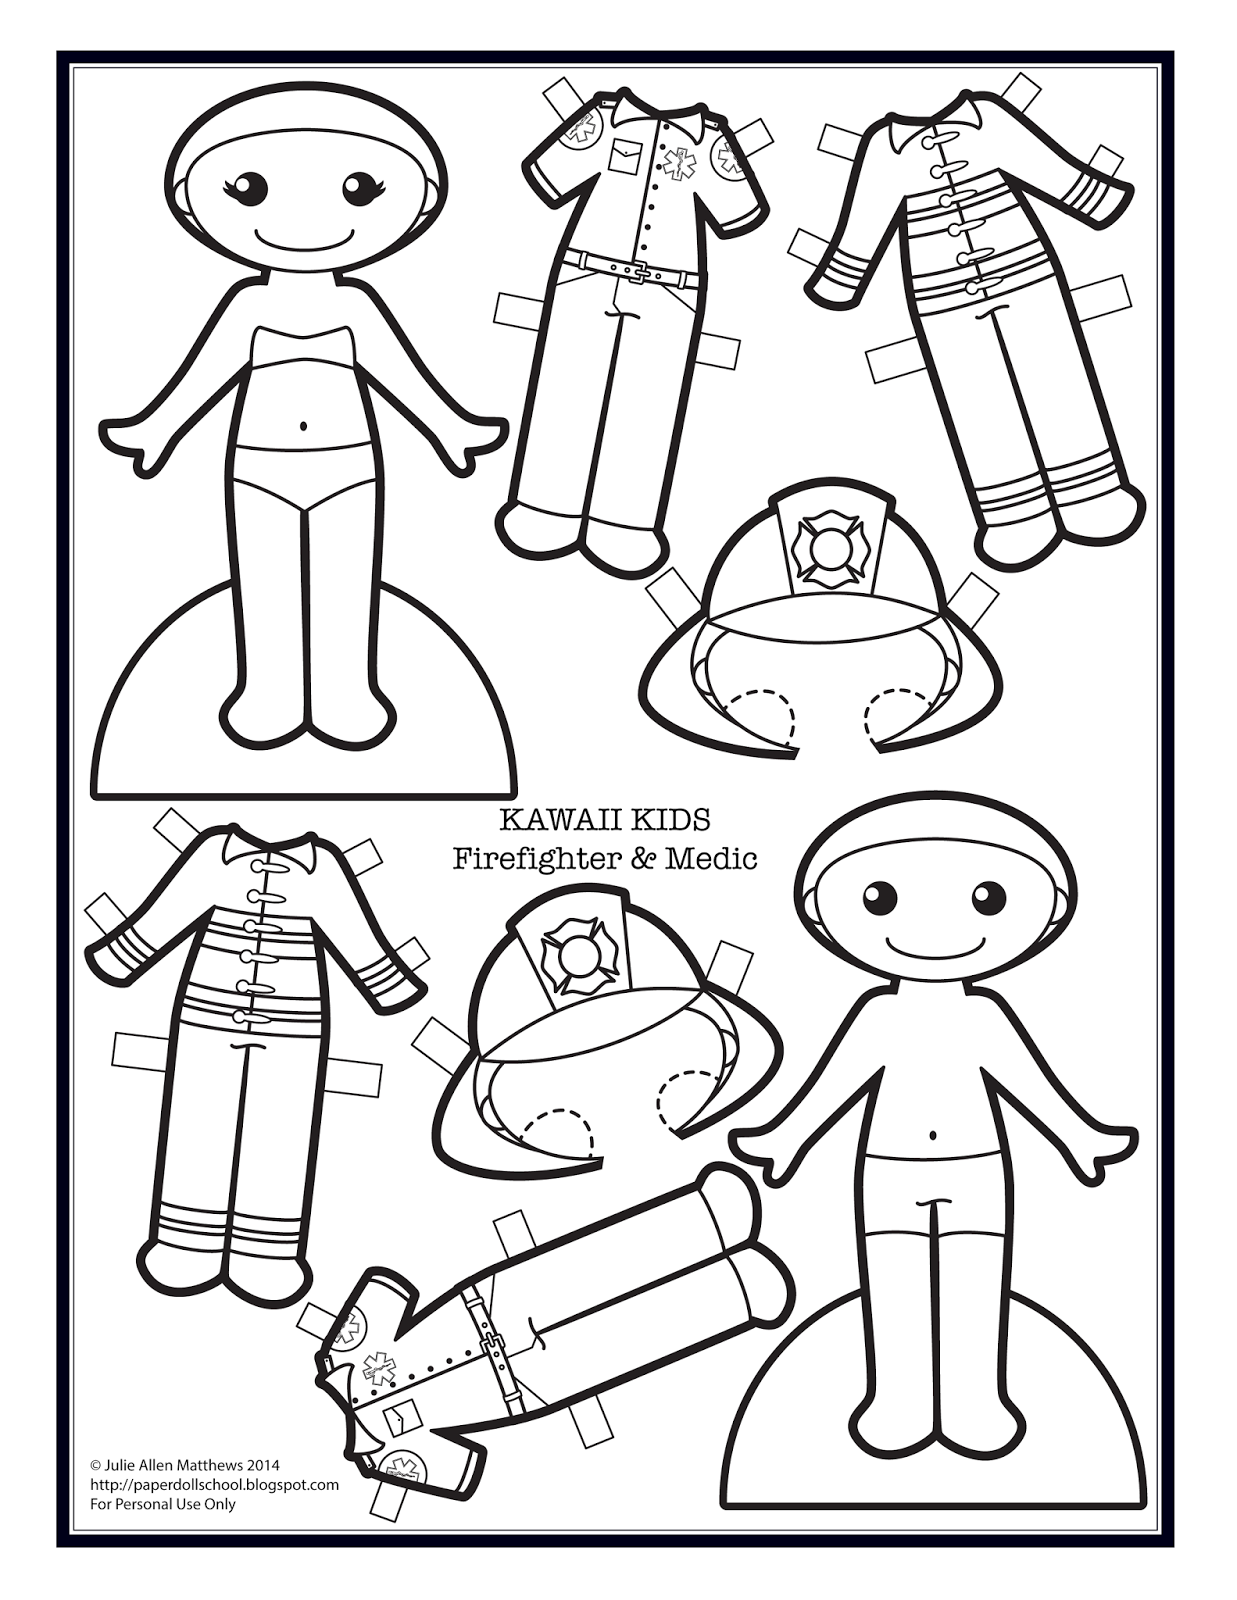 Paper Doll School Kawaii Wednesdays